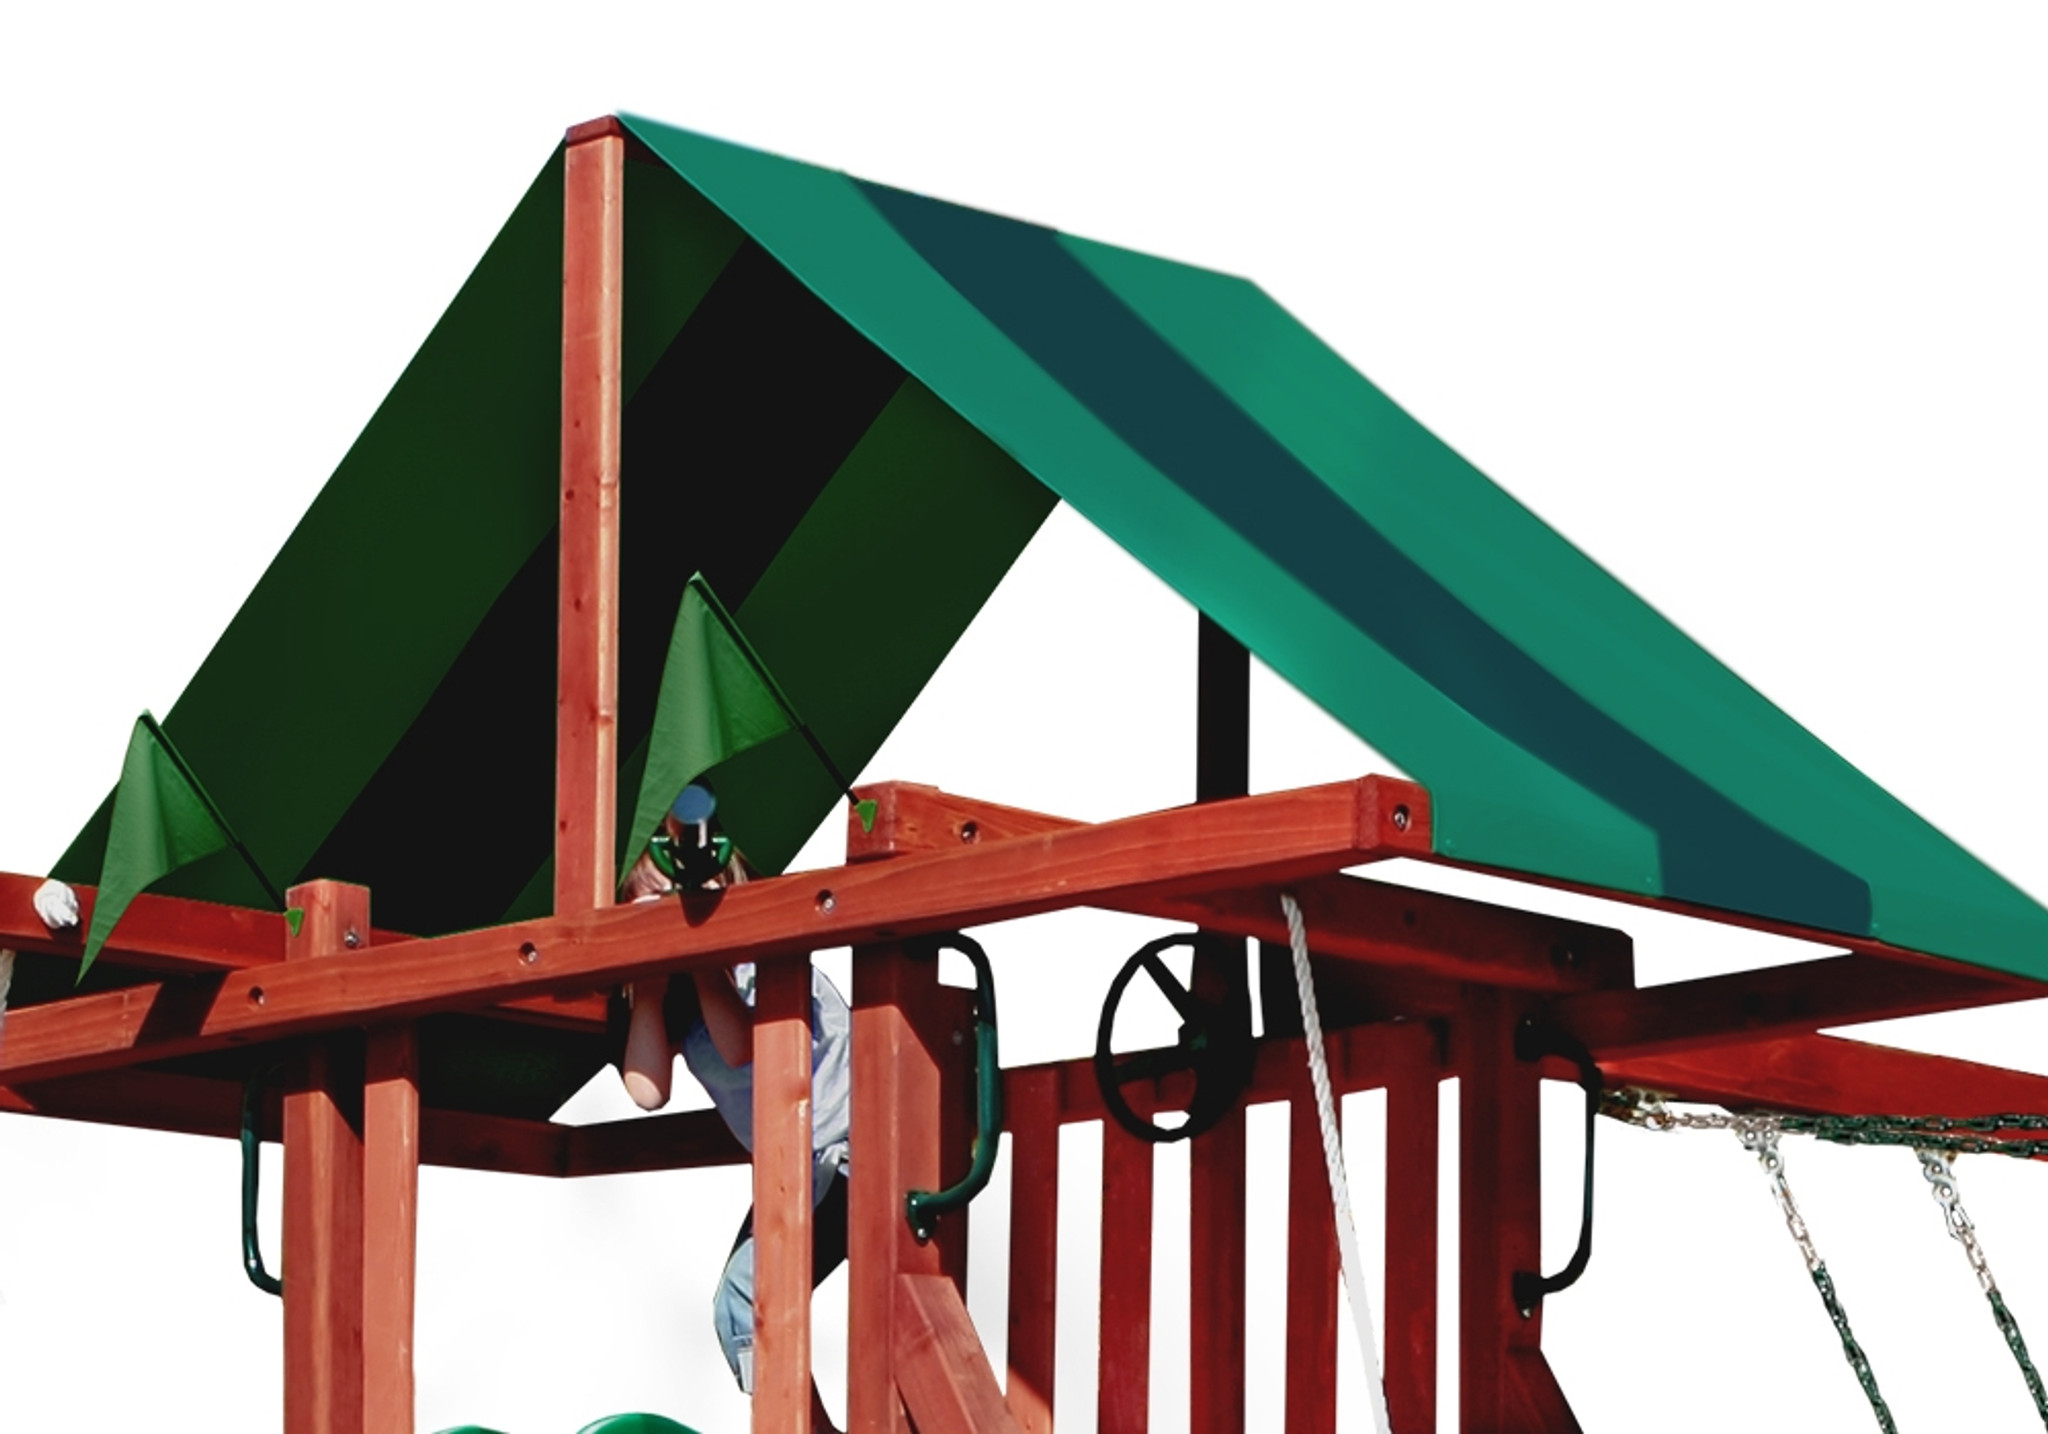 Vinyl Canopy For Sundance And Accessories By Gorilla Playsets